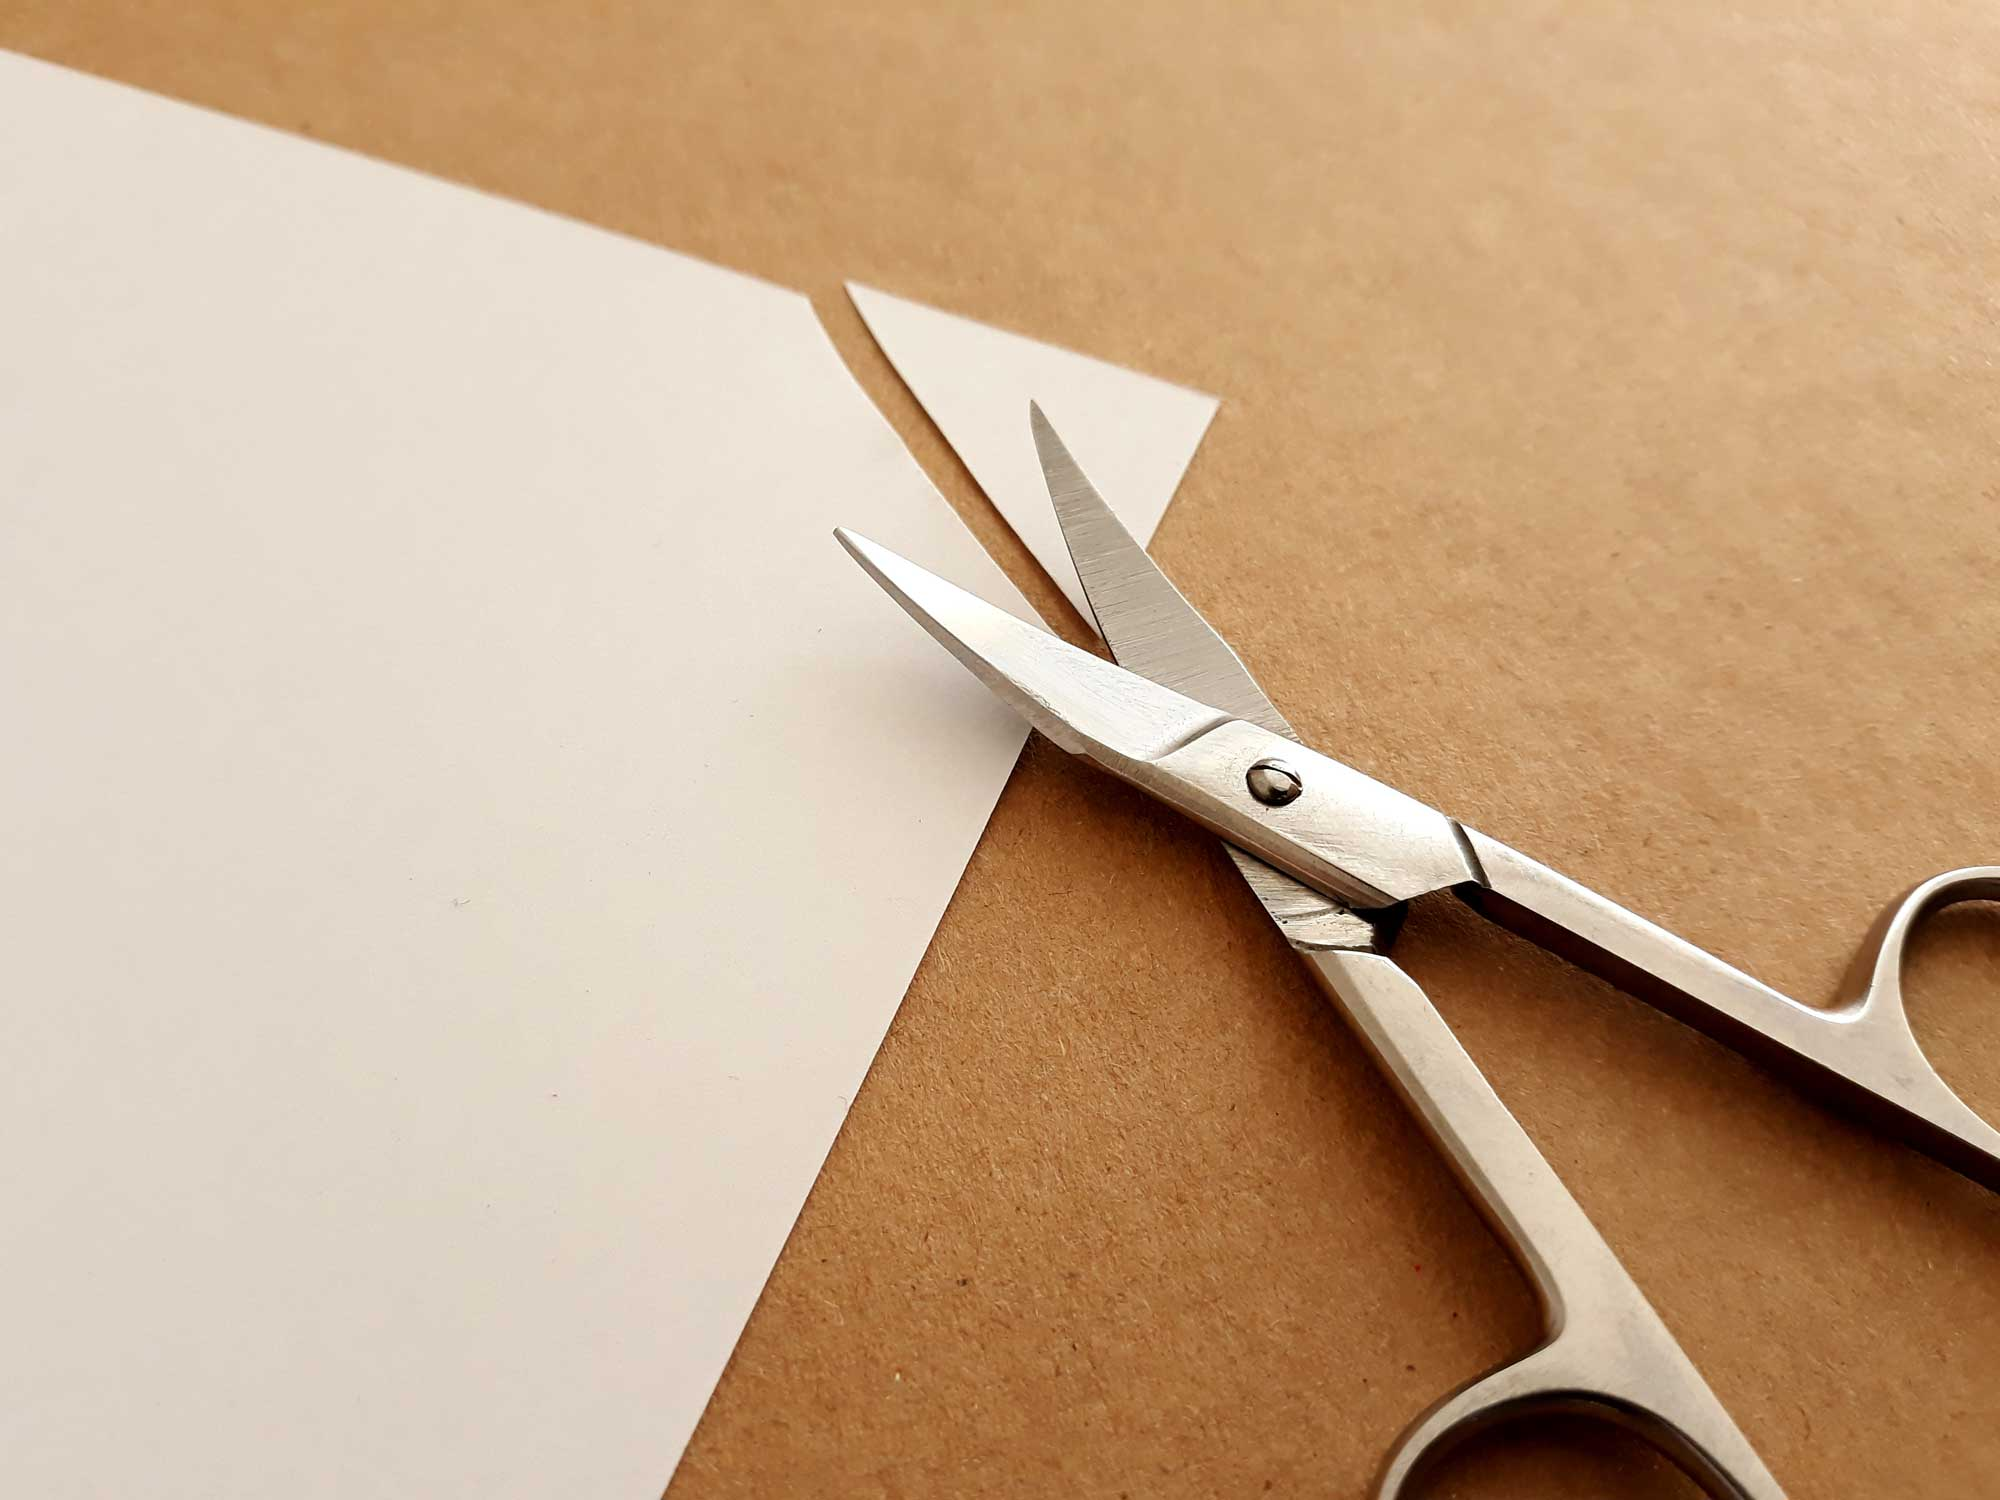 Scissors cutting corners off a page